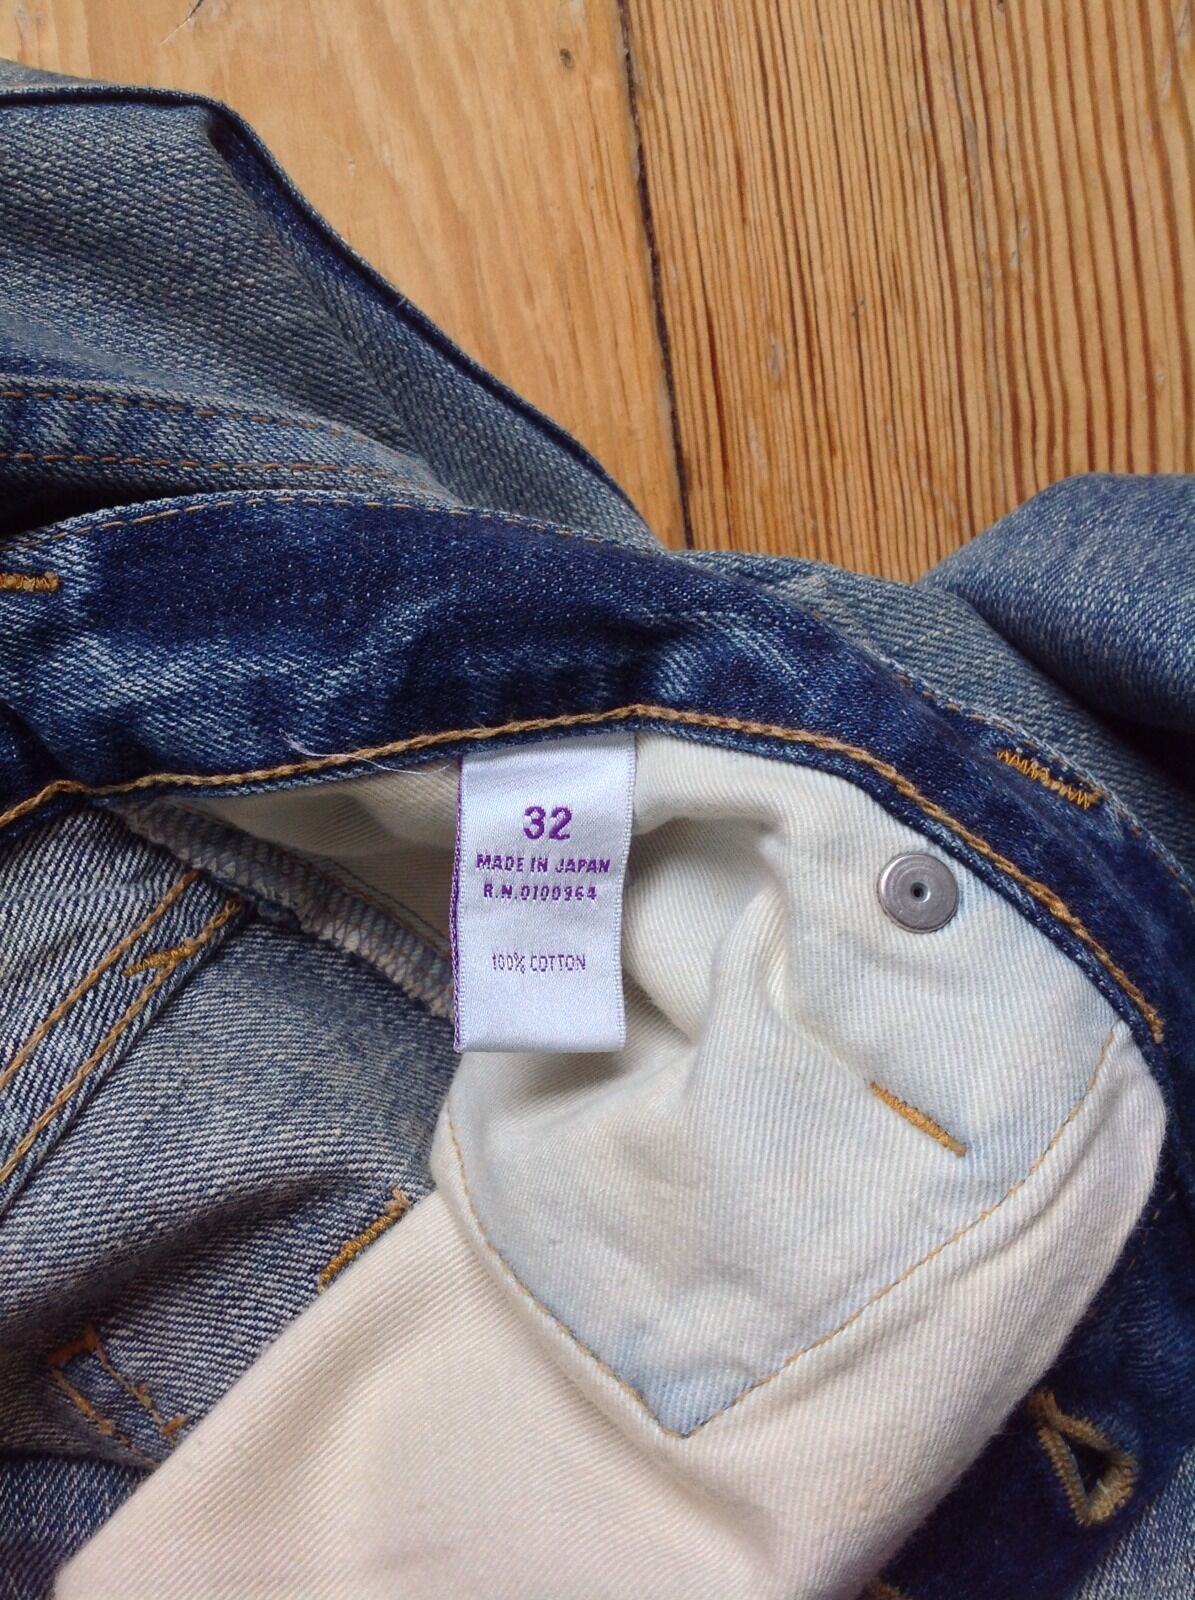 PRPS PRPS PRPS Jeans p57p88x Dimensione 32 made in Japan 4bfda4